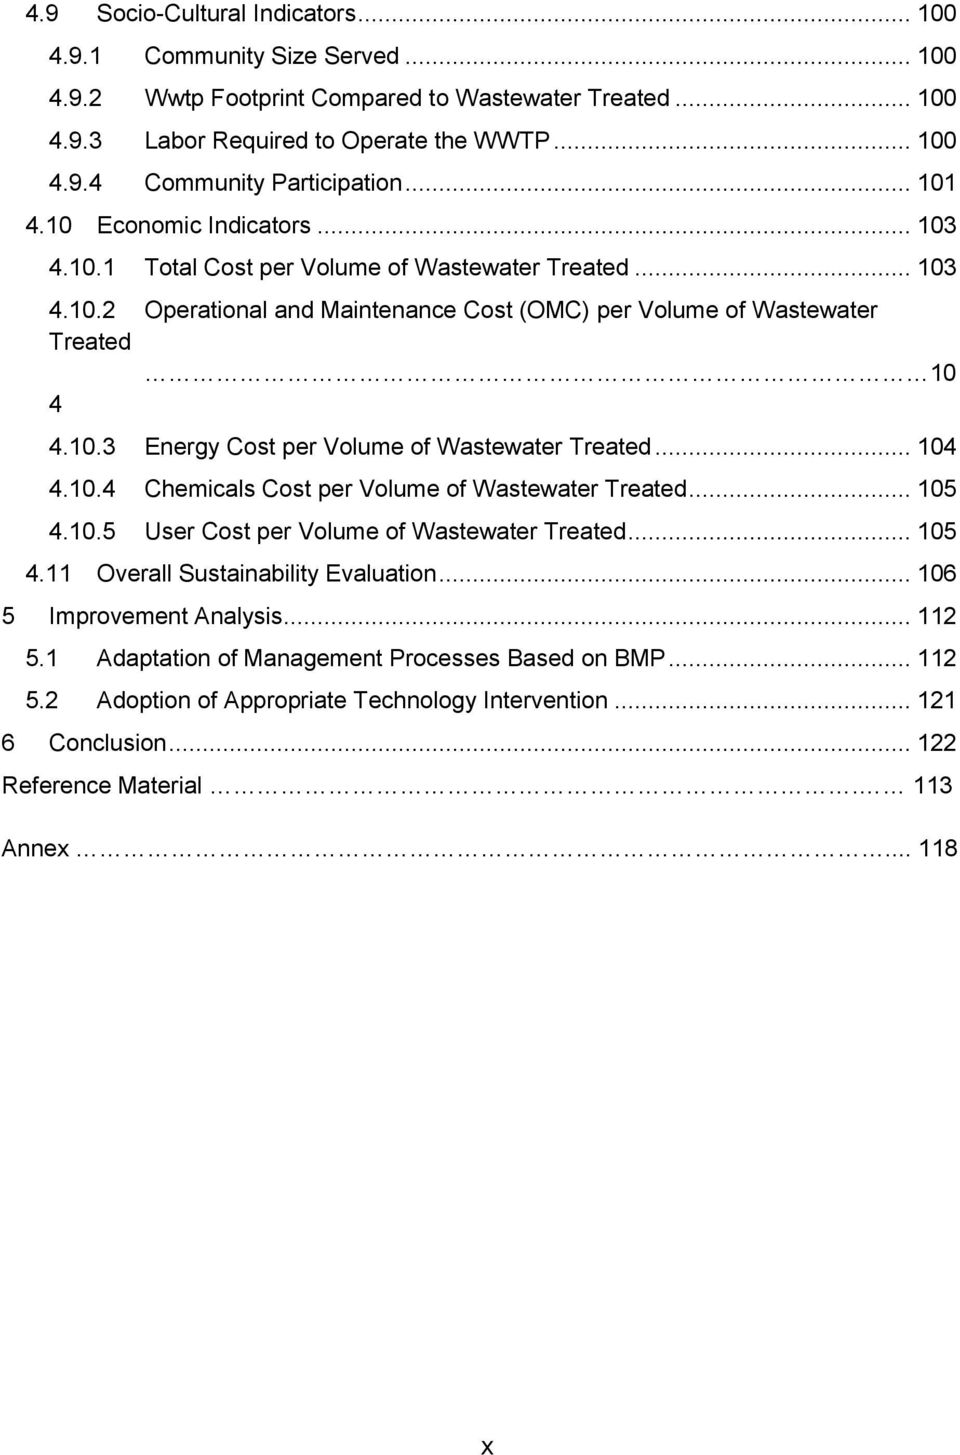 .. 104 4.10.4 Chemicals Cost per Volume of Wastewater Treated... 105 4.10.5 User Cost per Volume of Wastewater Treated... 105 4.11 Overall Sustainability Evaluation... 106 5 Improvement Analysis.